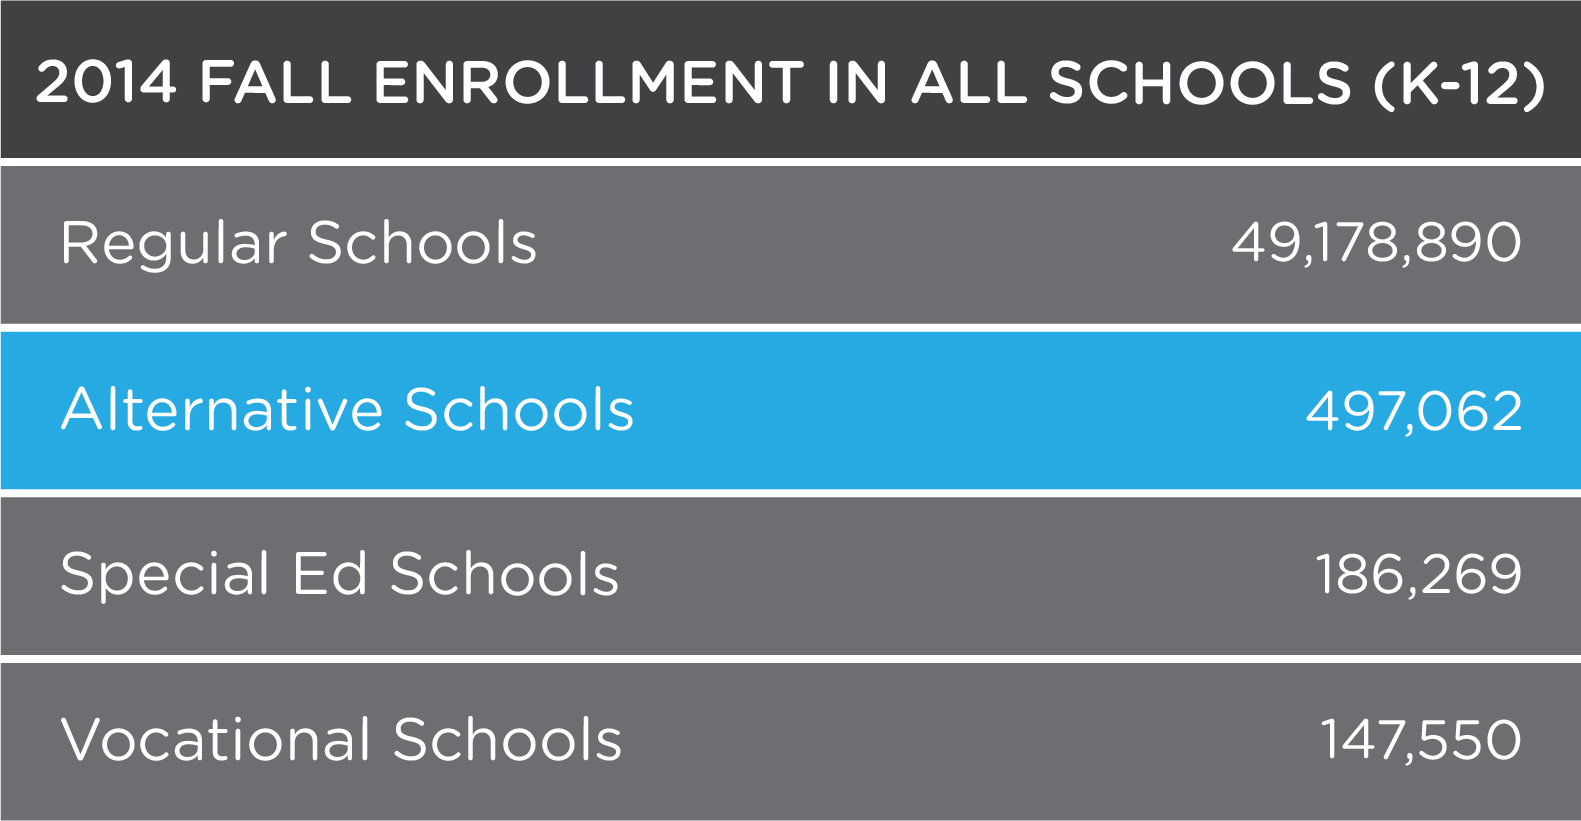 Alternative schools, which address the needs of students that can't be met in regular school programs, currently enroll about a half million students nationally.